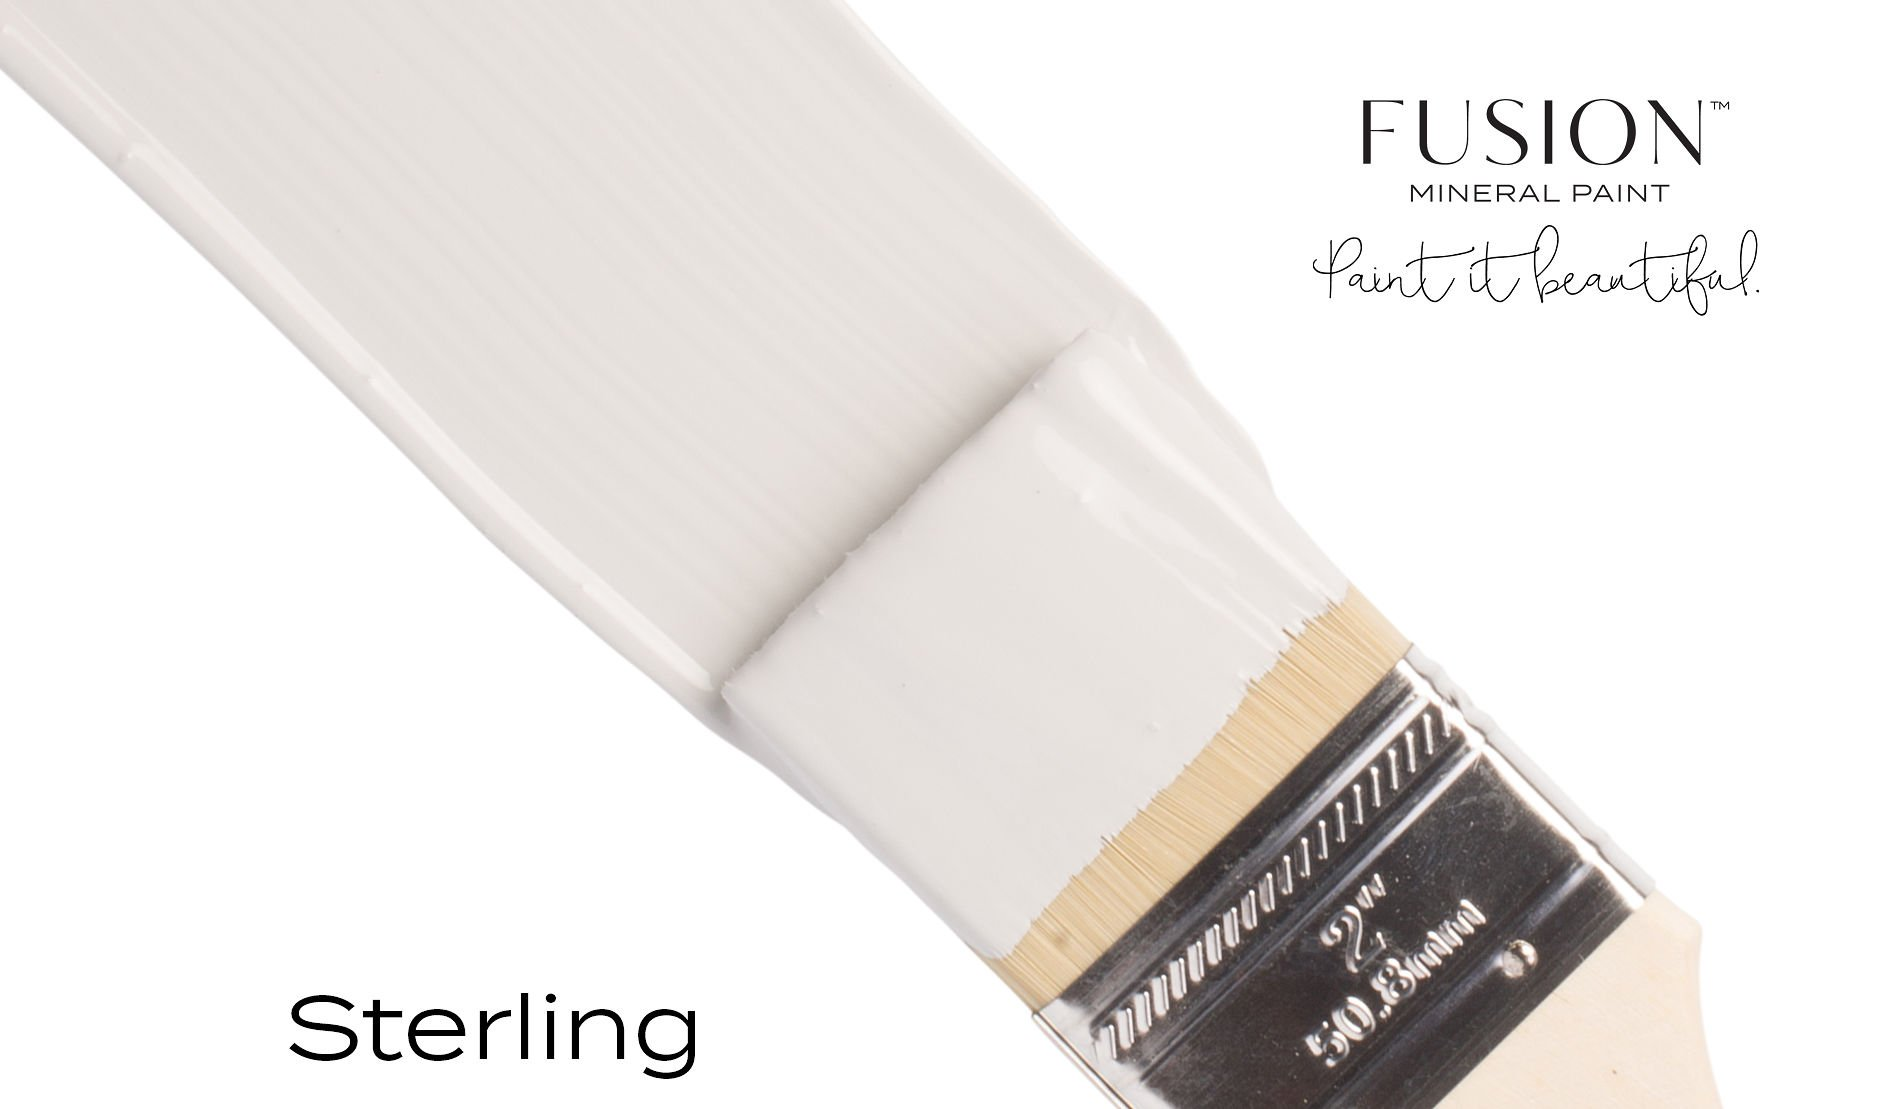 Fusion Mineral Paint Brushstroke - Sterling | www.raggedy-bits.com